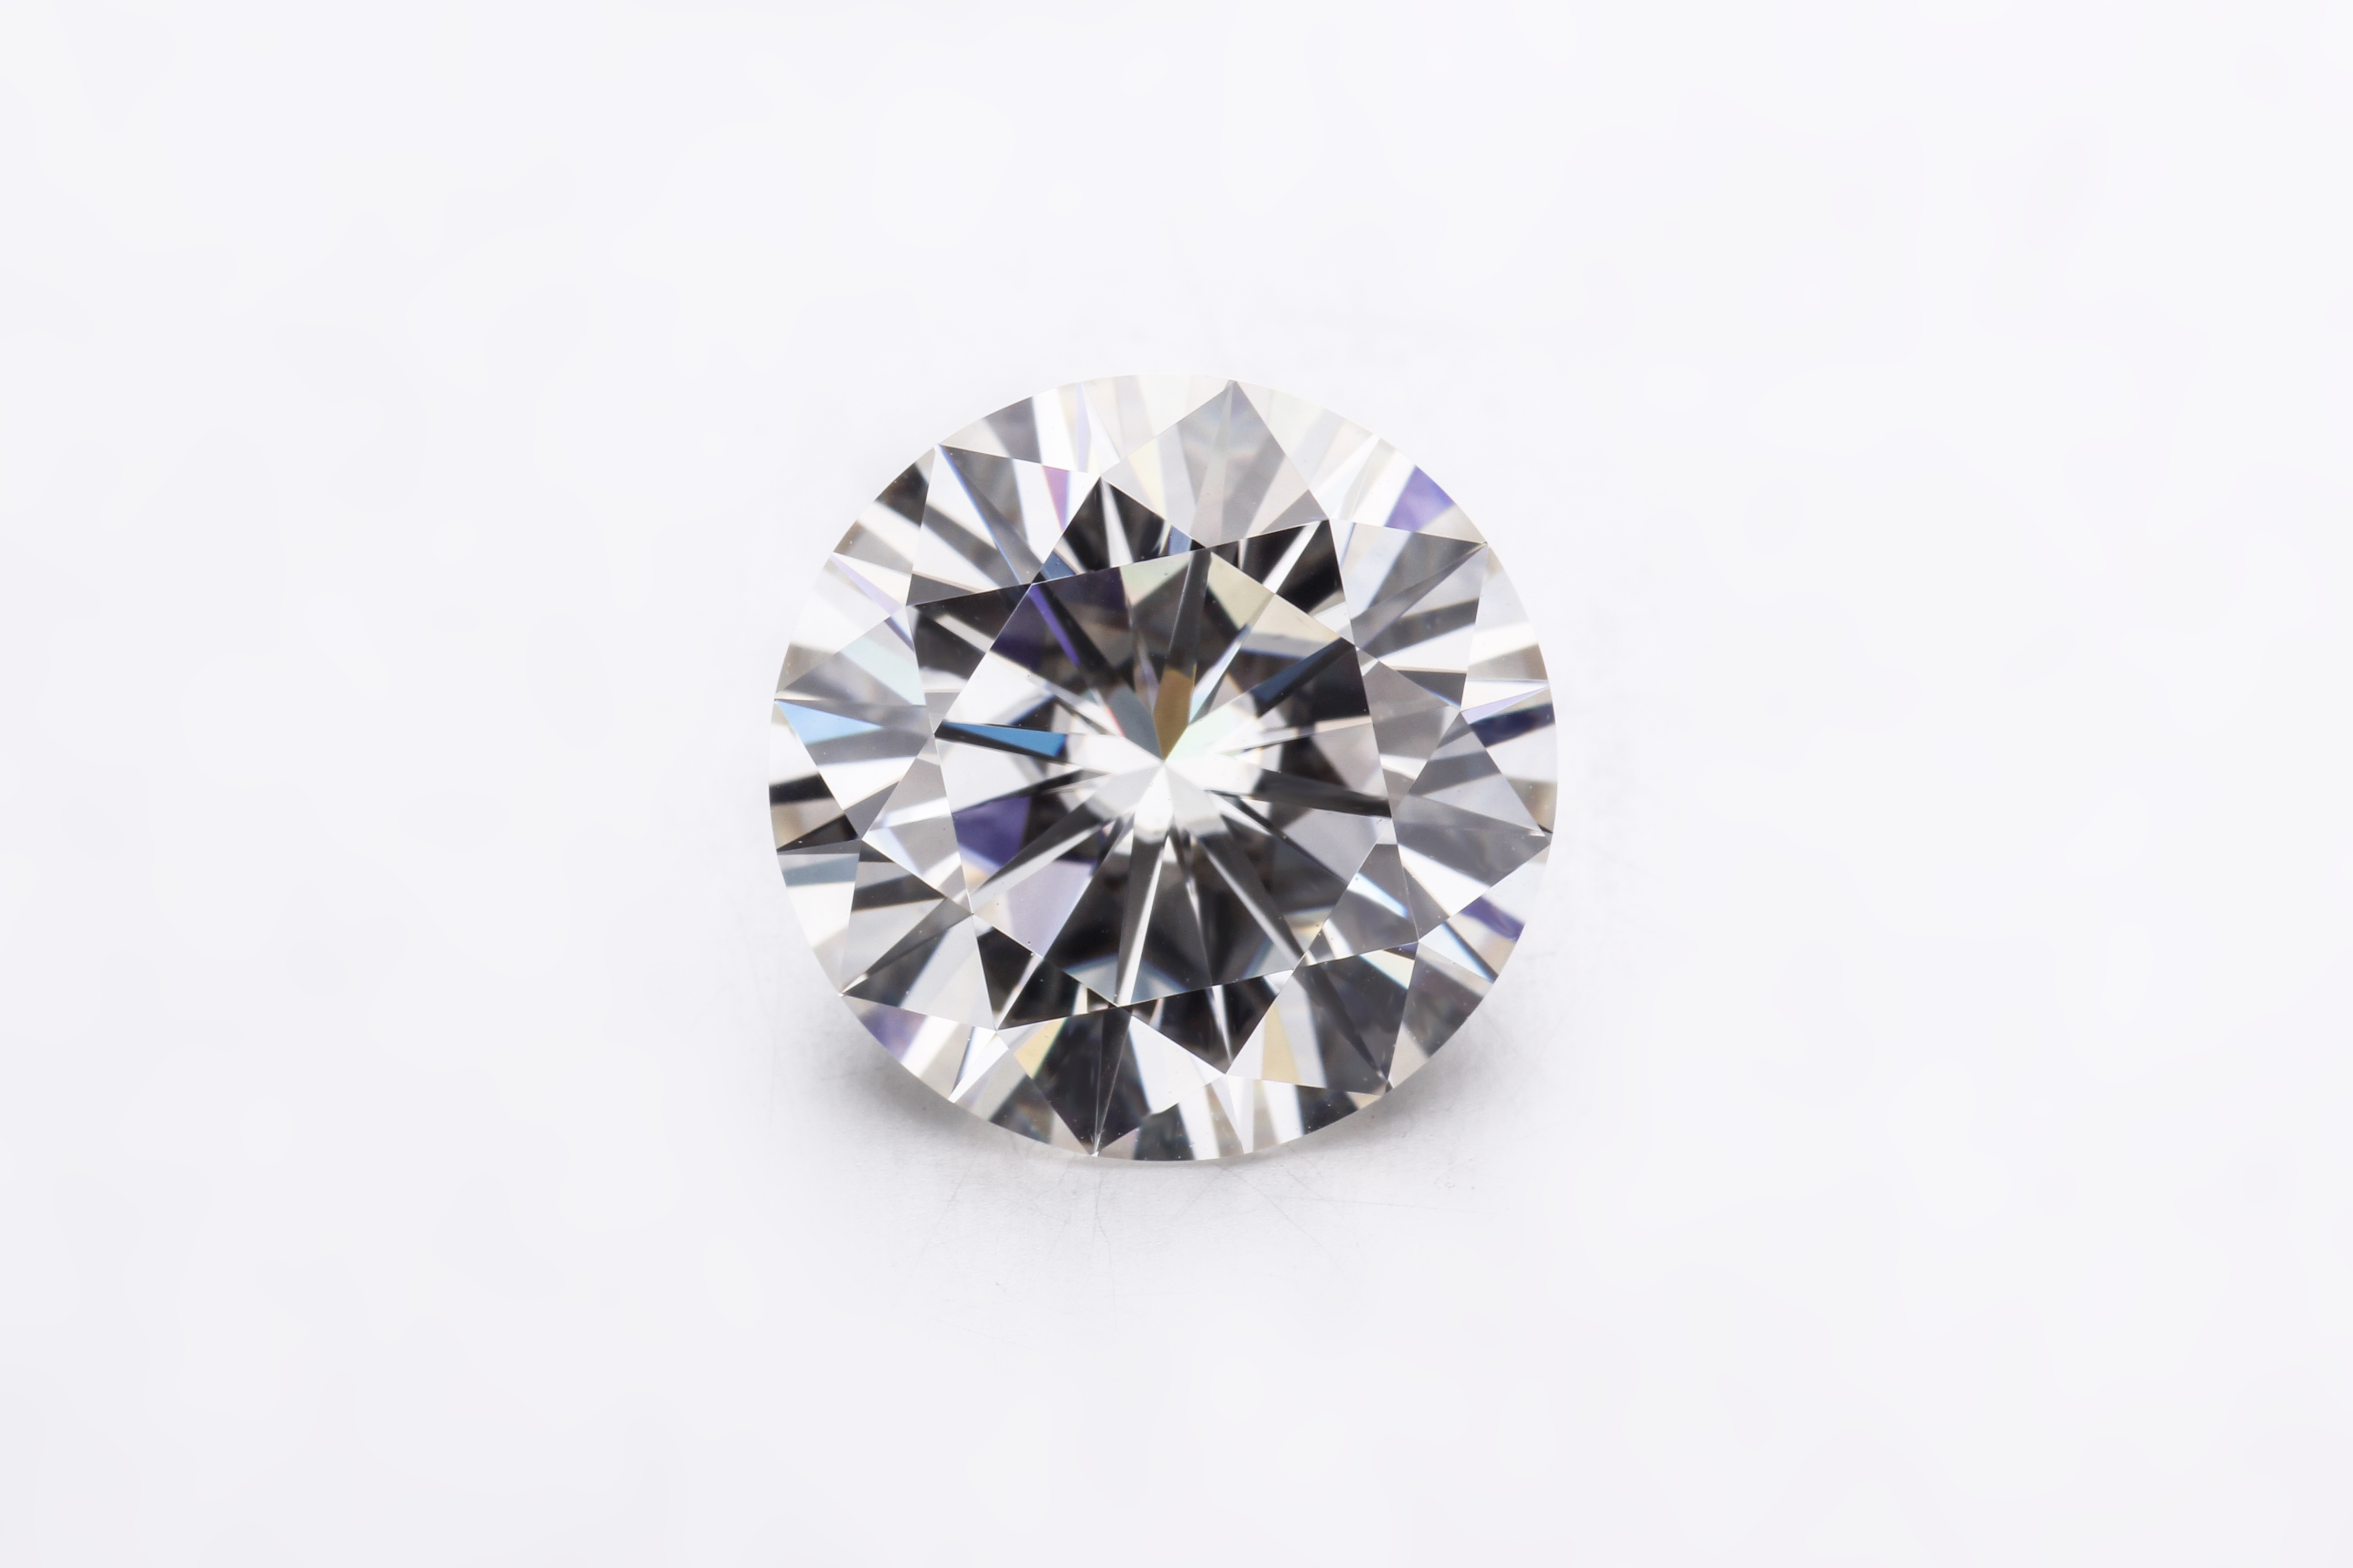 Round Brilliant Cut 3ct GH Color 9mm Moissanite VVS Loose Stone Test Passed Possitive Gemstone